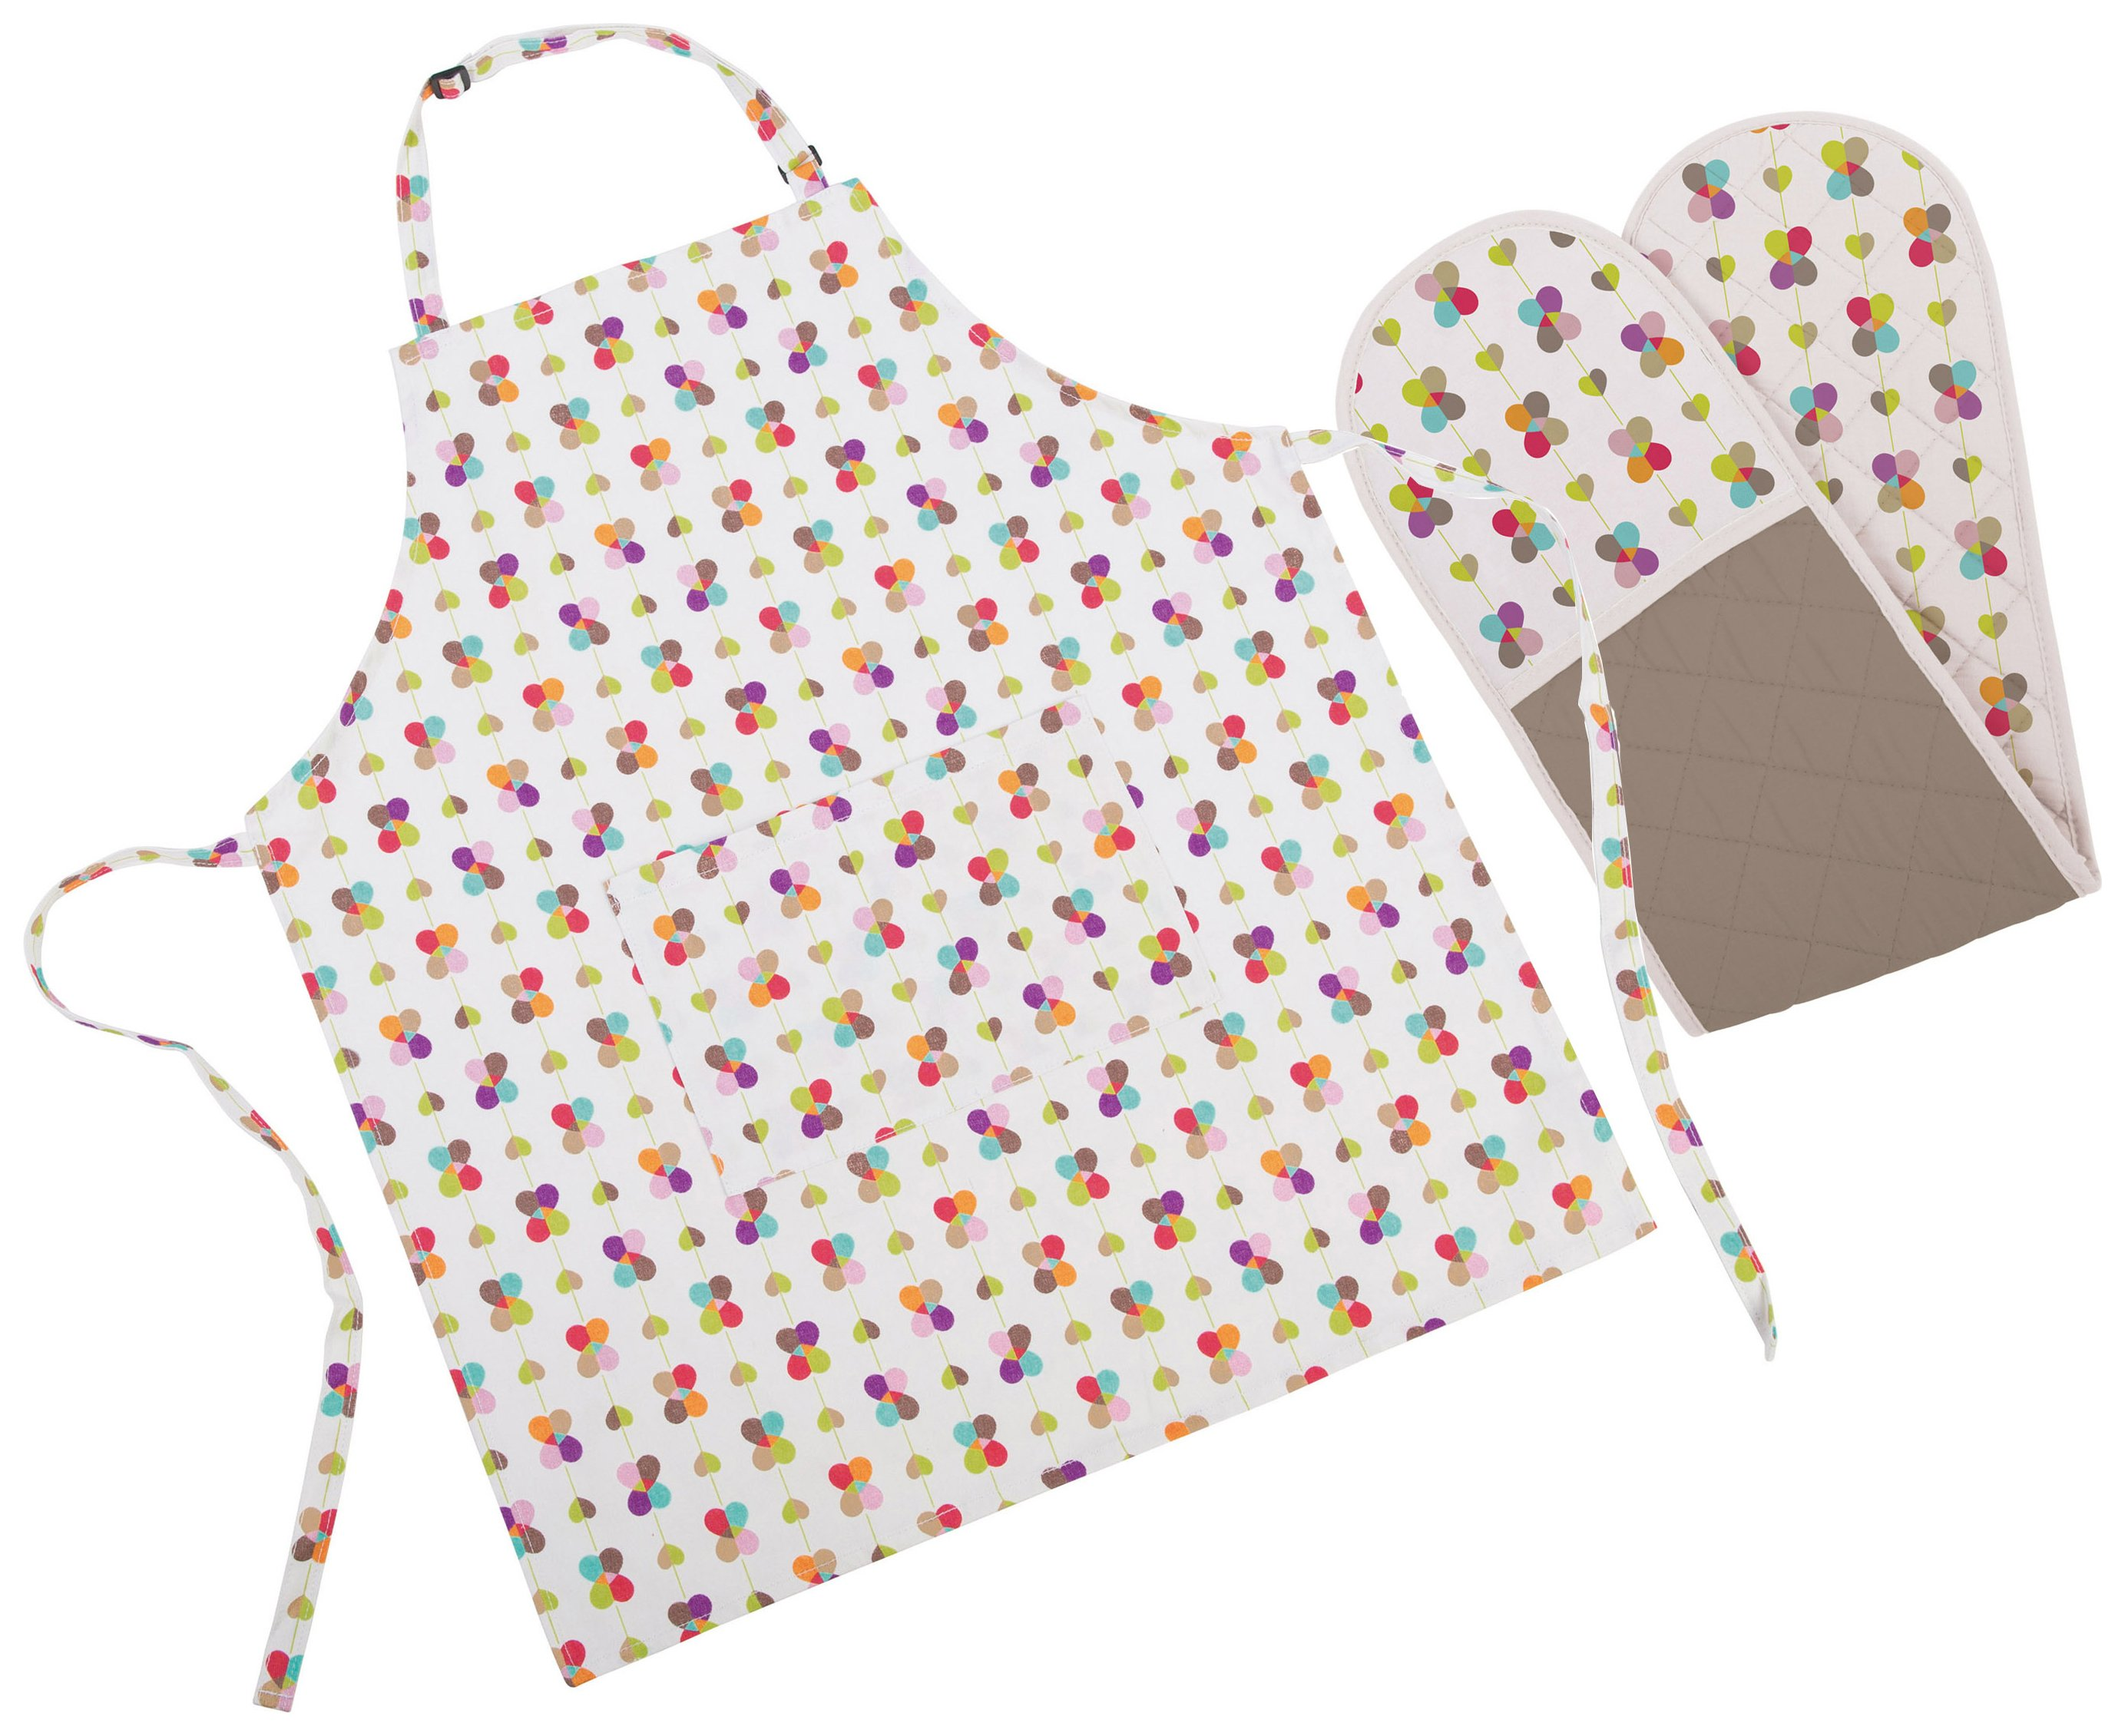 Image of Beau and Elliot - Blooming Lovely Apron and Oven Glove Set